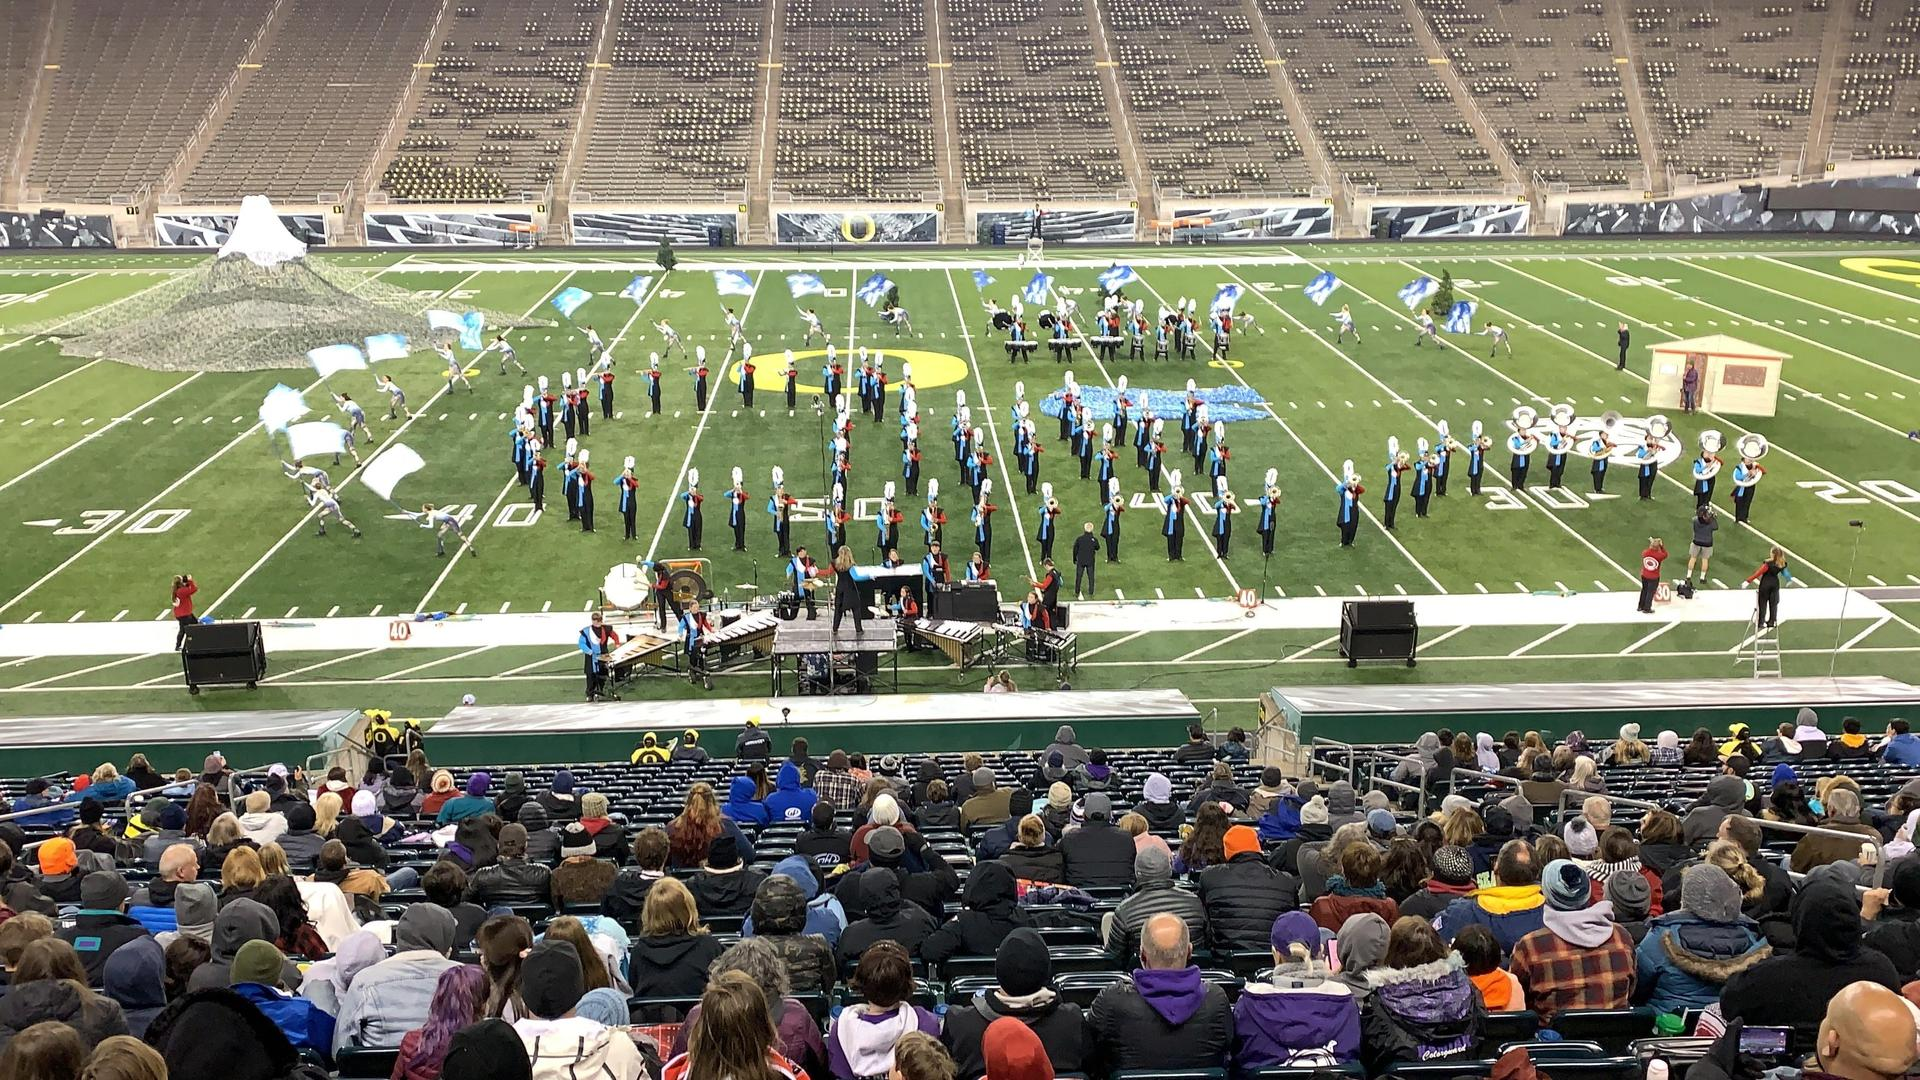 Marching Band at U. of Oregon